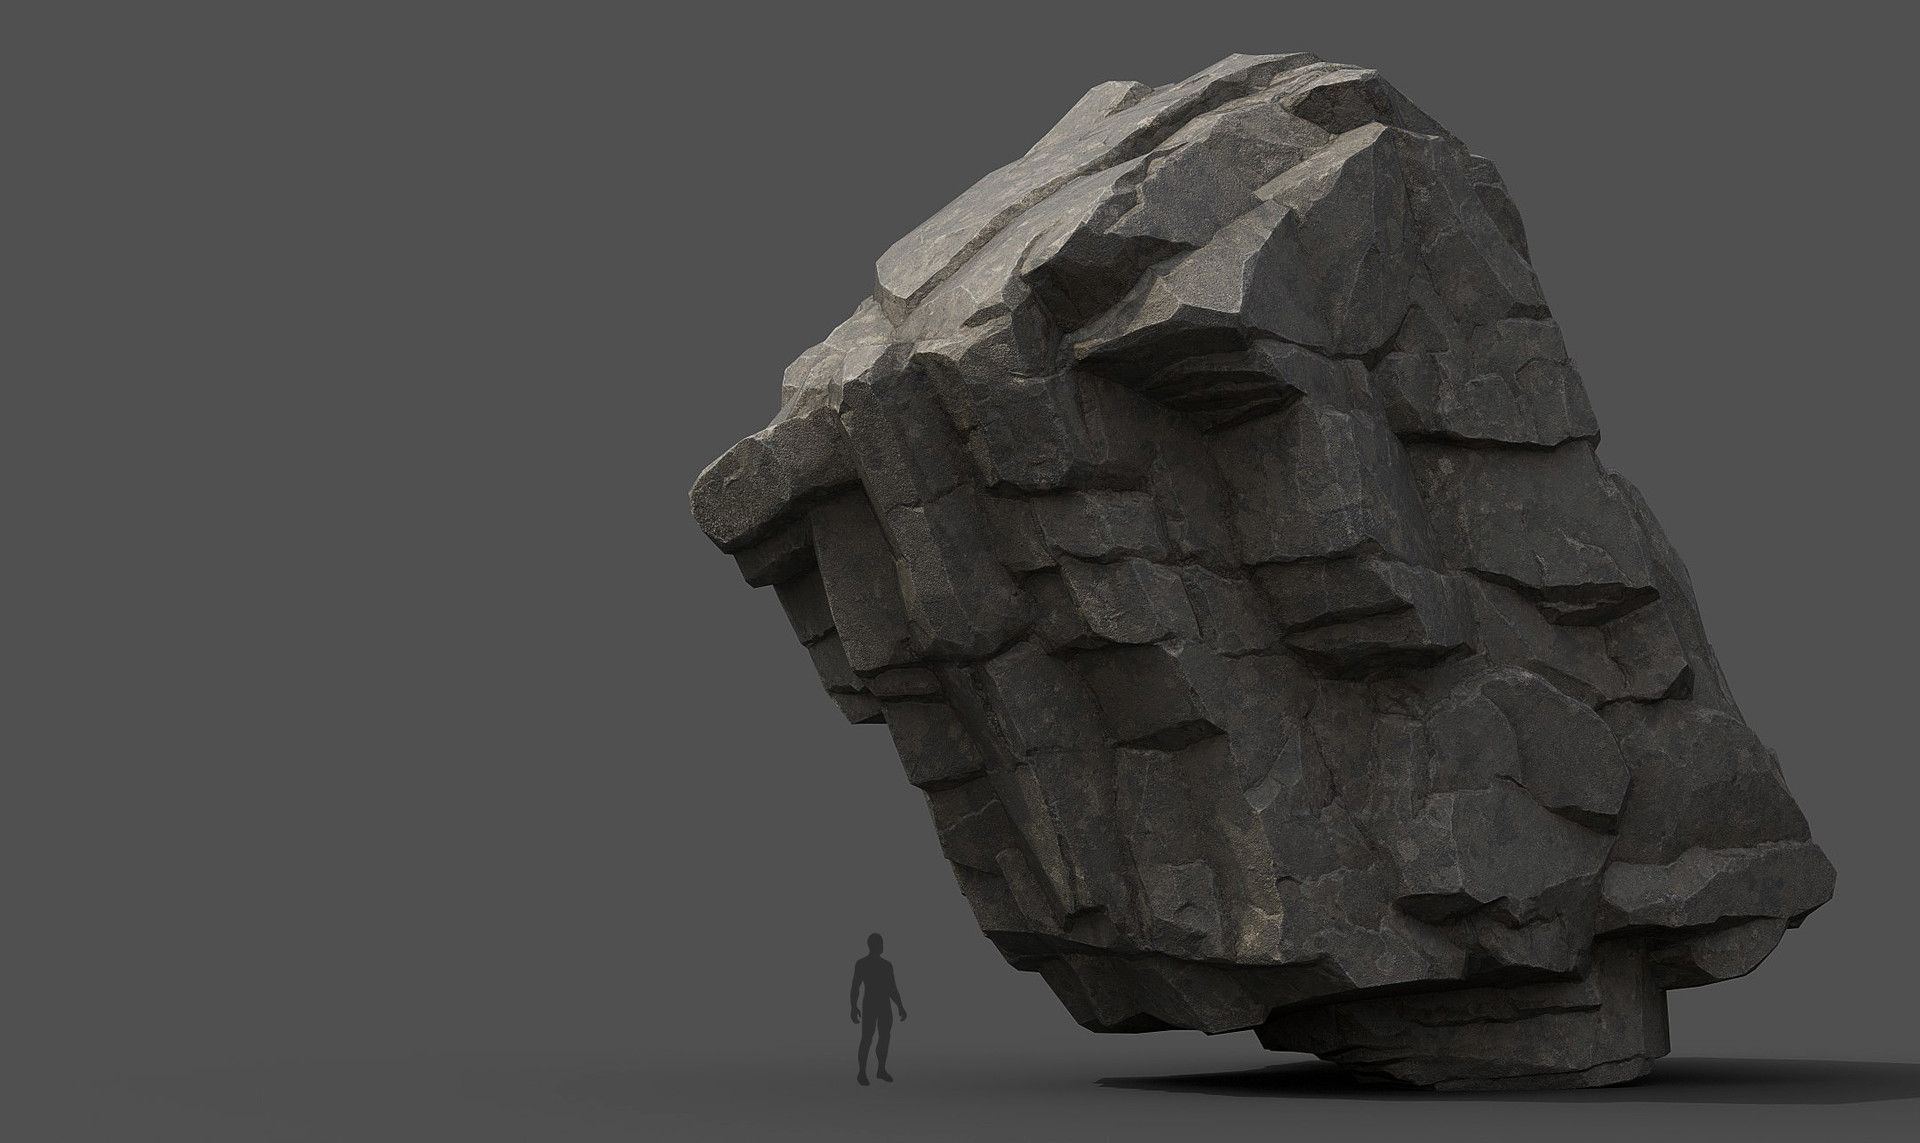 ArtStation Modular Rocks Alen Vejzovic